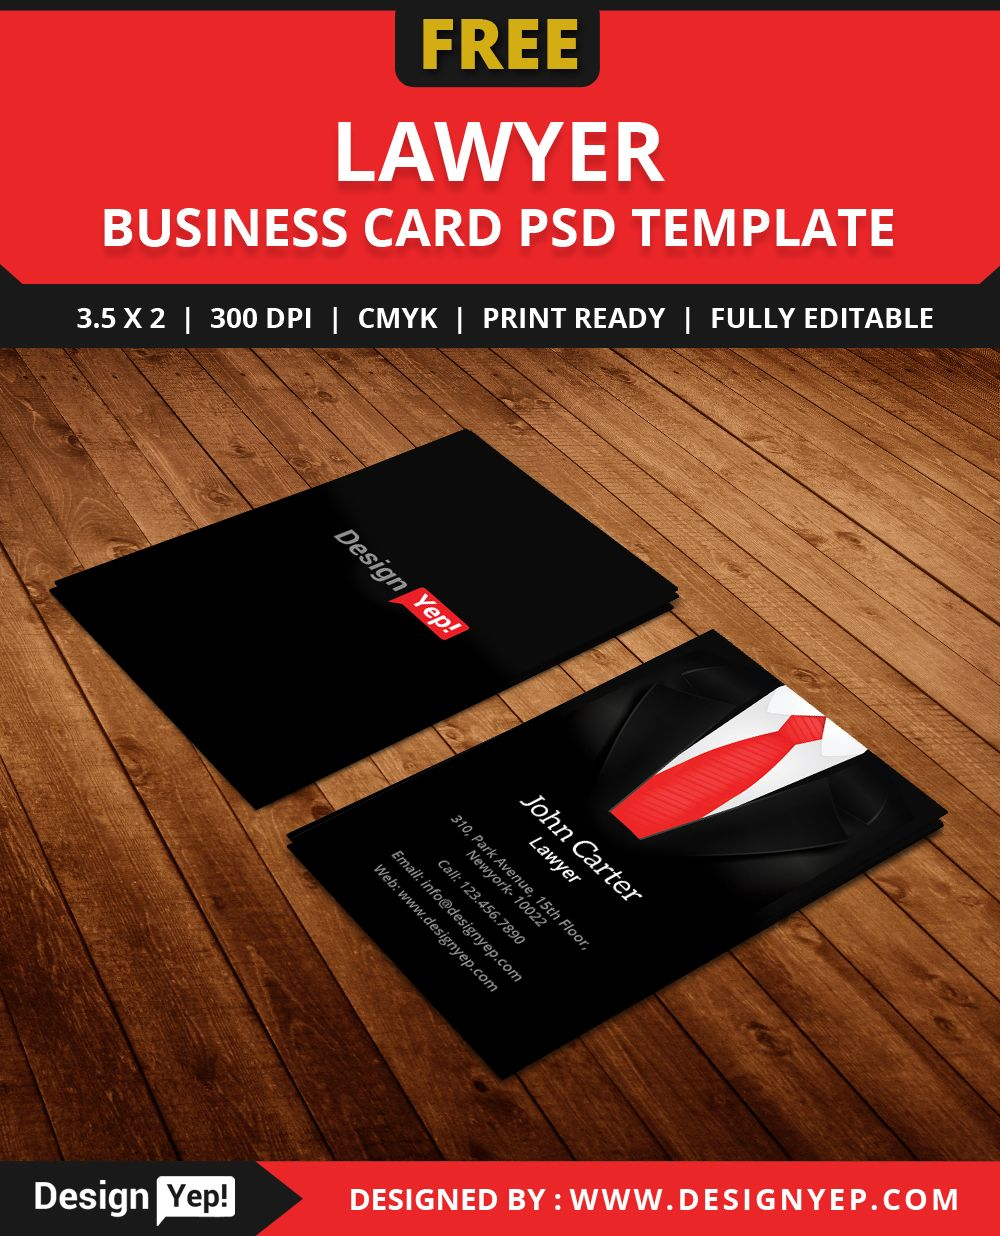 Free lawyer business card template psd free business card free lawyer business card template psd wajeb Images